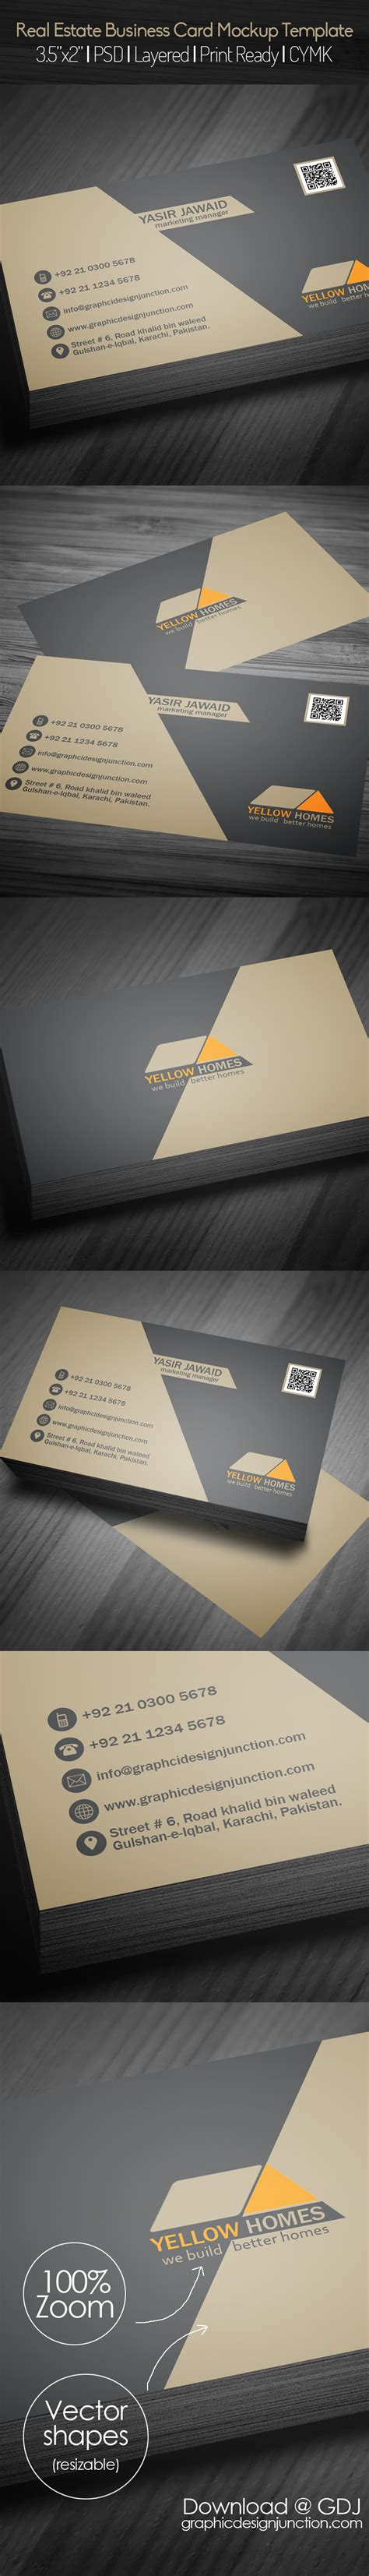 business card template graphic design freebie free real estate business card template psd freebies